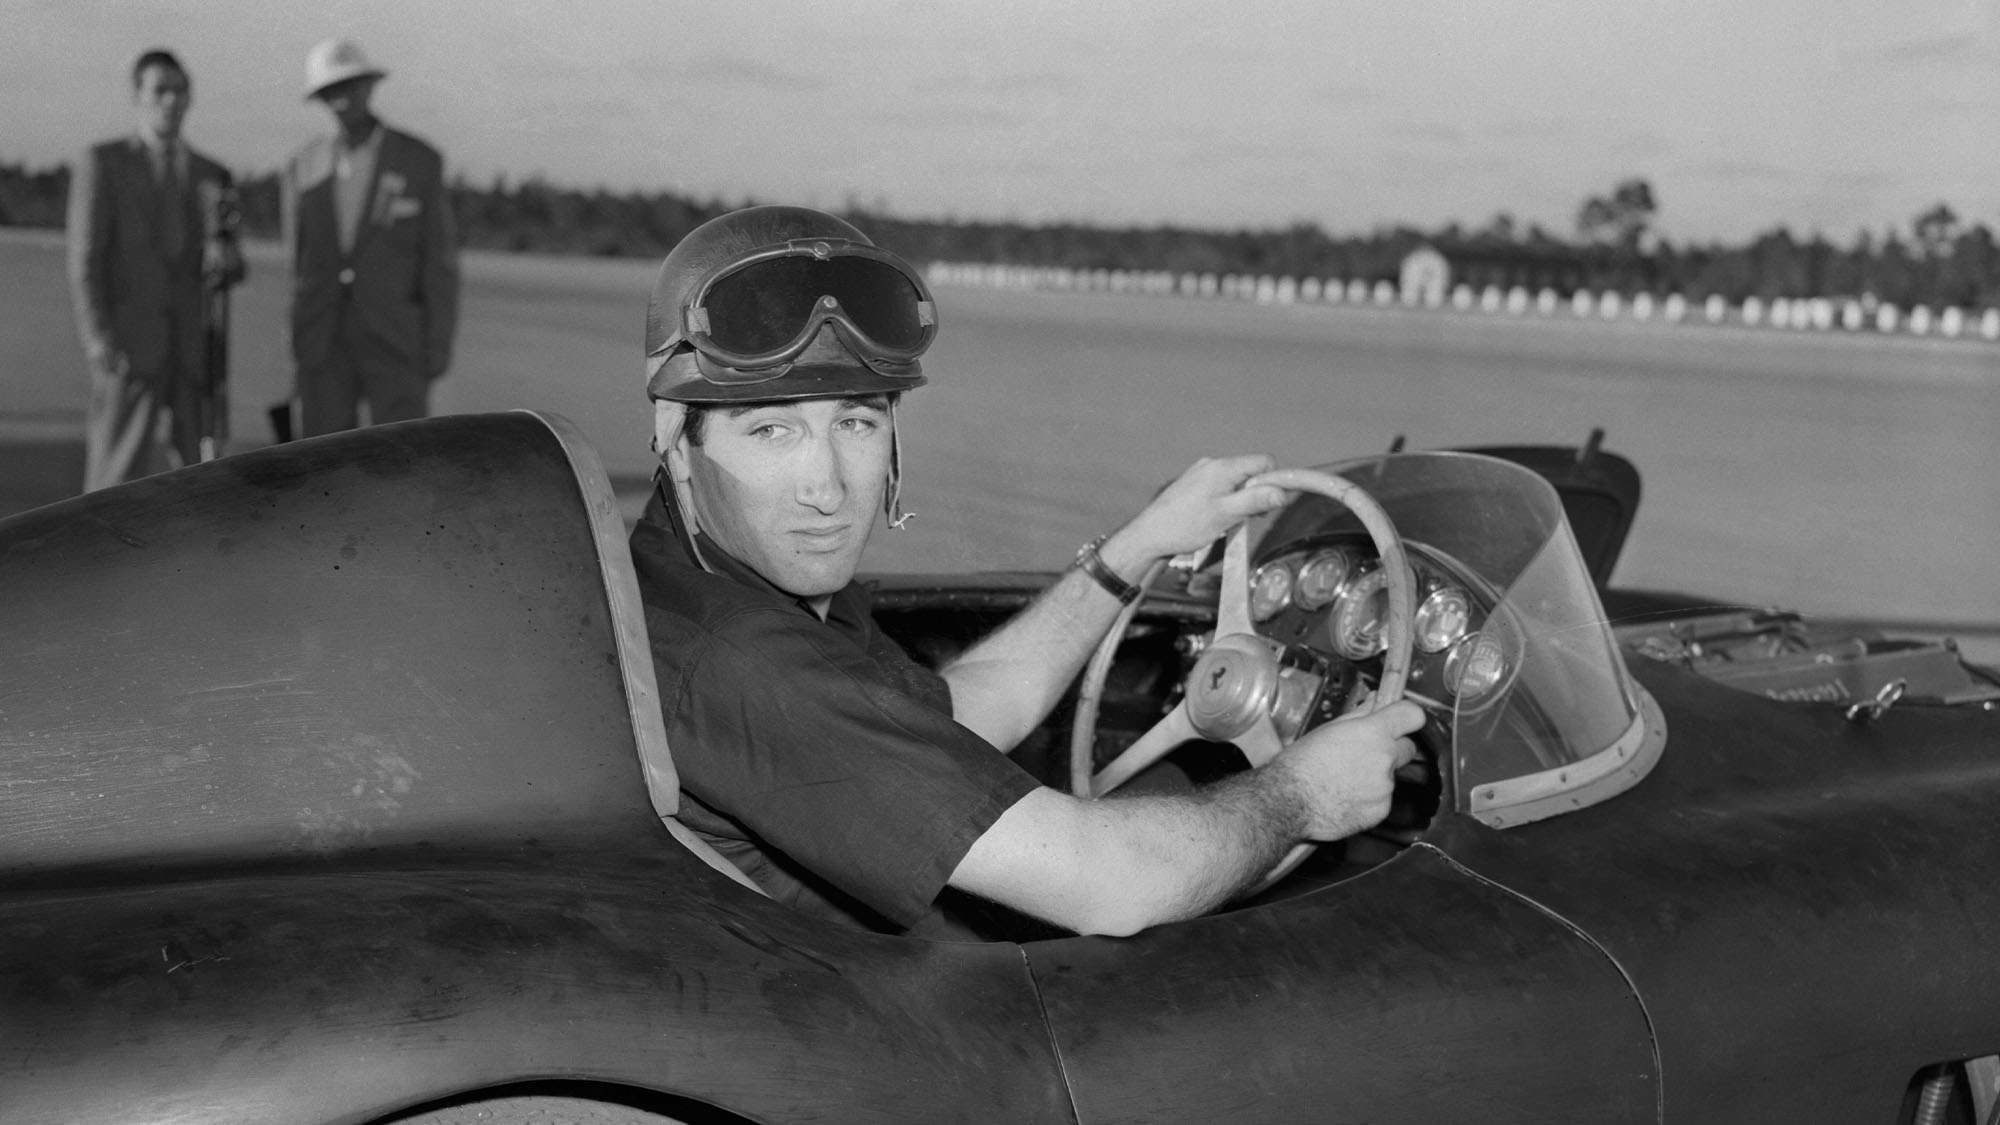 Original Caption) The Marquis de Portago of Spain sits in his three liter Ferrari after winning the 30 lap, 105 mile auto race at Windsor Field Course. The following day the Marquis placed second in the 210 mile Nassau Trophy Race, while America's Matsen Gregory of St. Louis, Mo., won; and the Baron Huschke von Hanstein of Germany came in third.